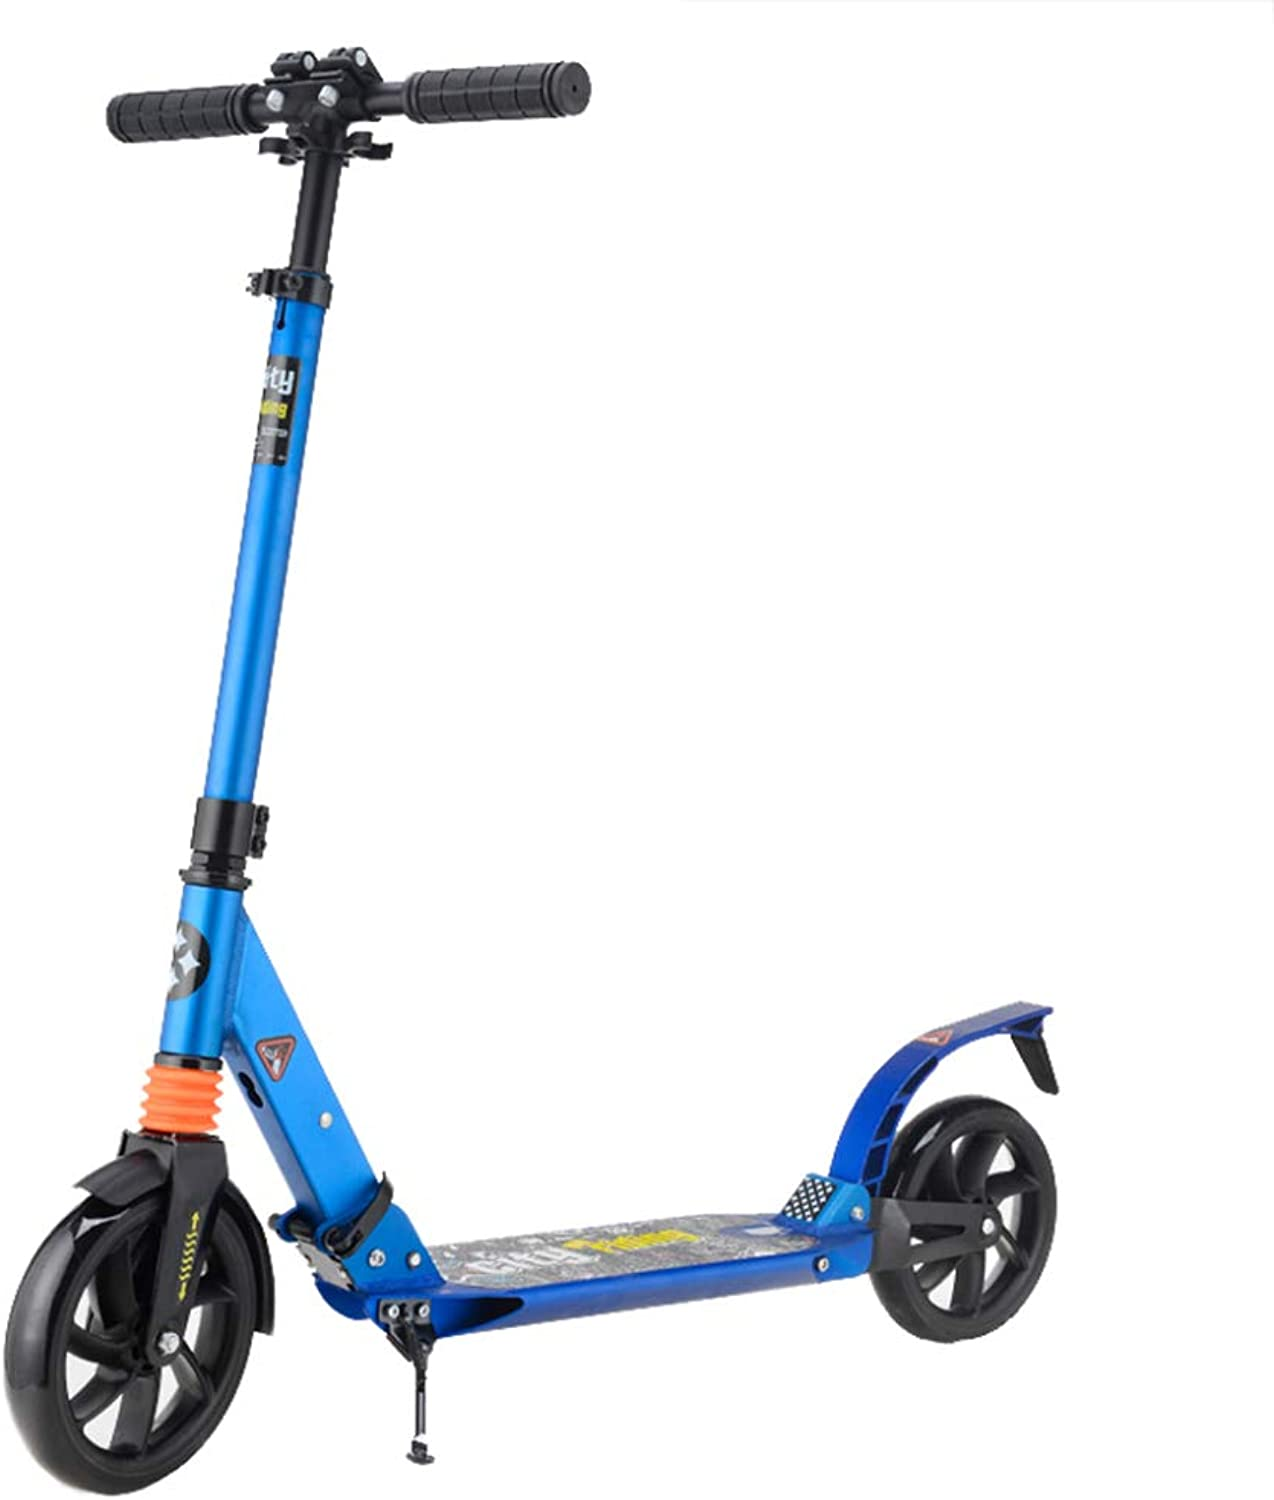 Kick Scooters for Adults Foldable for Youth Teens Older Kids 2 Wheel Adjustable Portable UltraLightweightwith Kick Stand Support 220 Lb